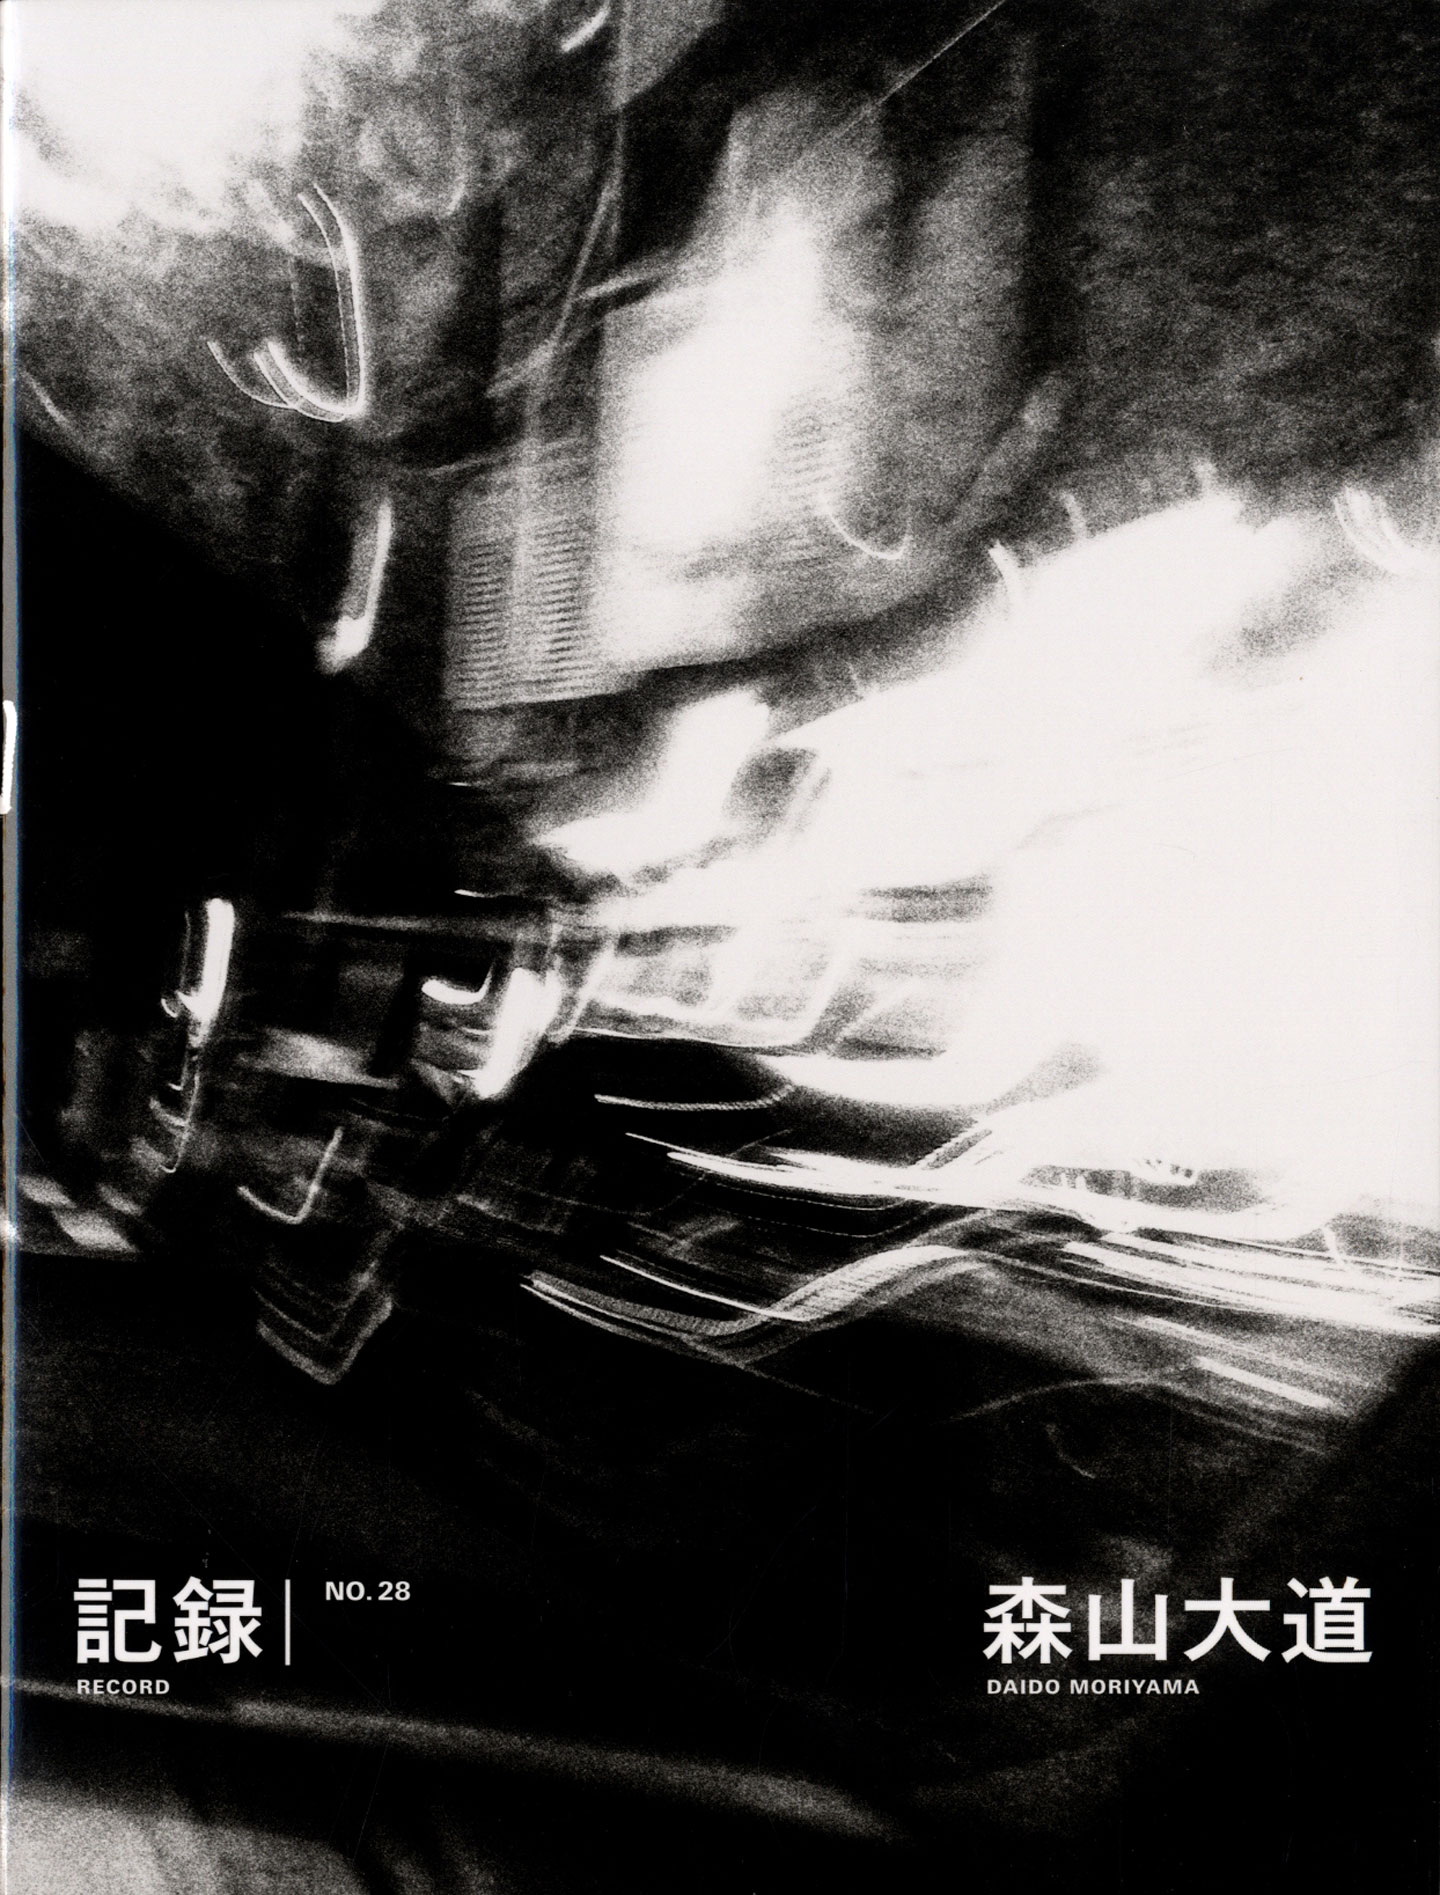 Daido Moriyama: Record Nos. 1-40 / Kiroku, Nos. 1-40, Complete Set (Includes Reprinted Edition of Nos. 1-5 and No. 6 through No. 40); Daido Moriyama × Hajime Sawatari: Record Extra; Daido Moriyama: Record, Movie in London [ALL TITLES SIGNED]